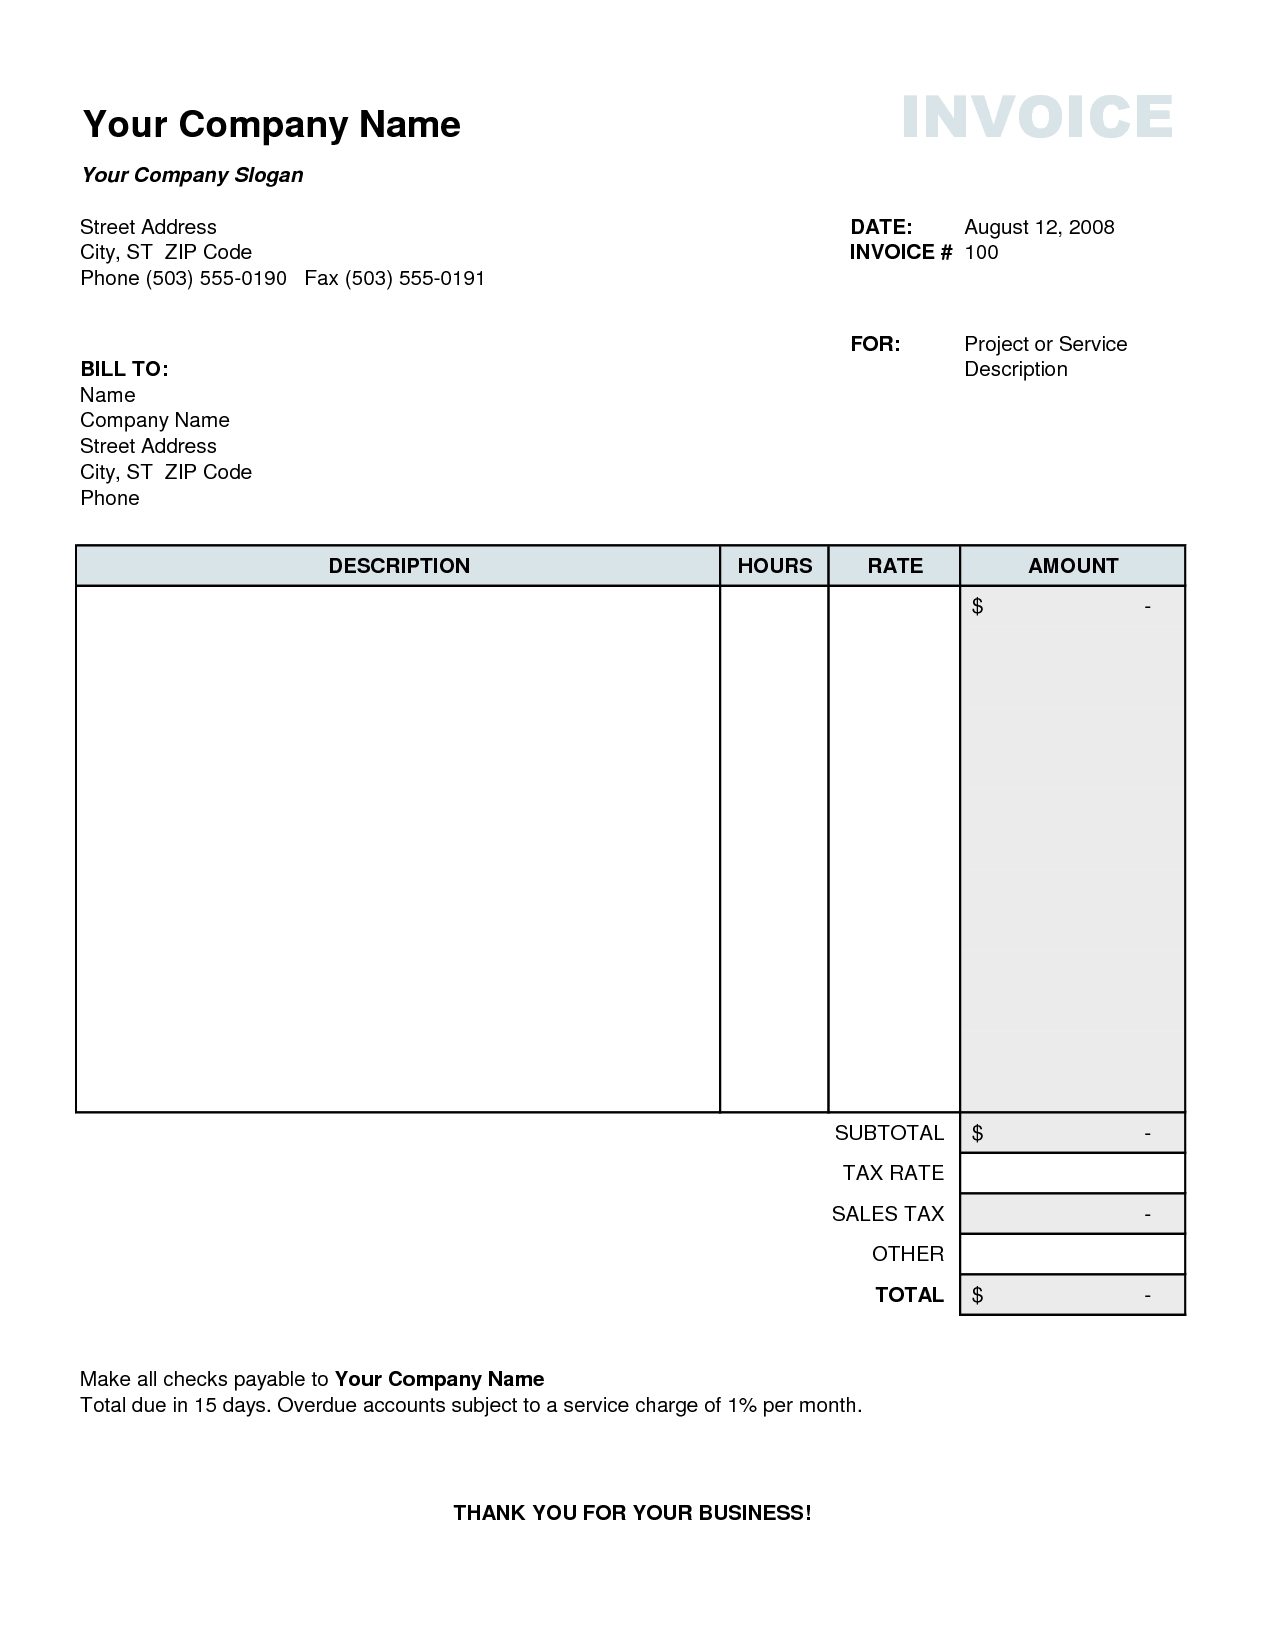 tax invoice form invoice for advertising services | dromfja.top 1275 X 1650